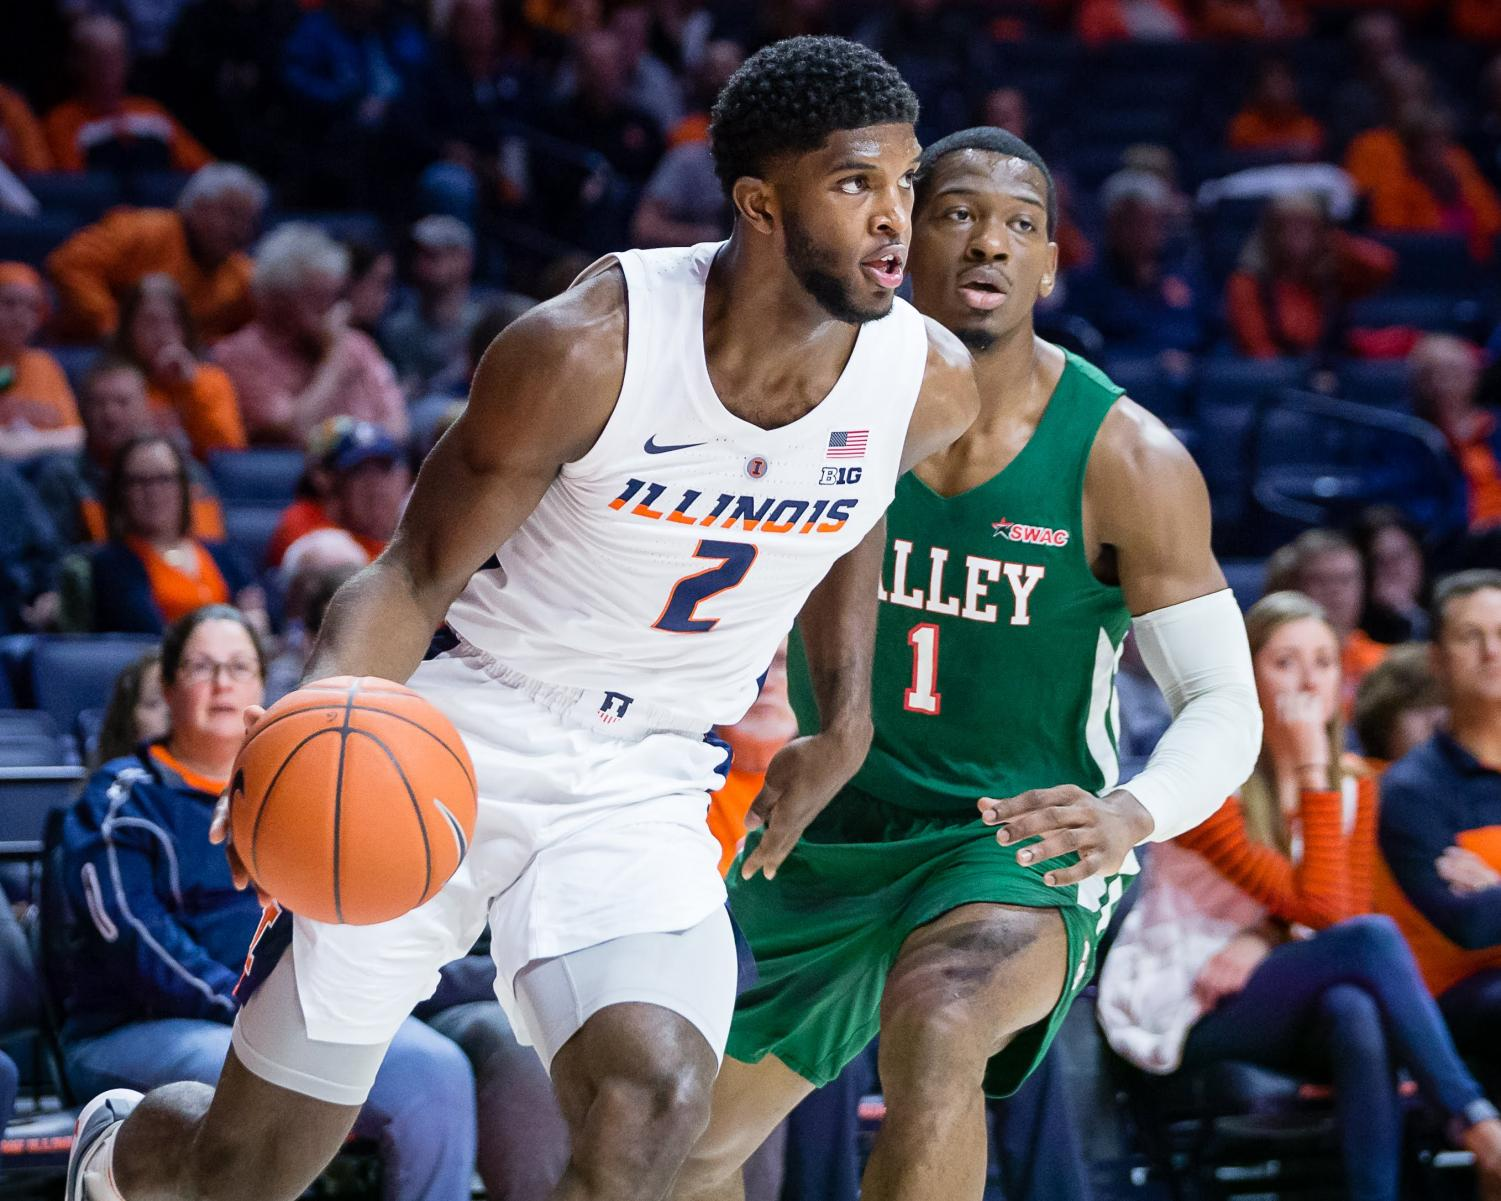 Illinois forward Kipper Nichols drives to the basket during the game against Mississippi Valley State at State Farm Center on Nov. 25. The Illini won 86-67.